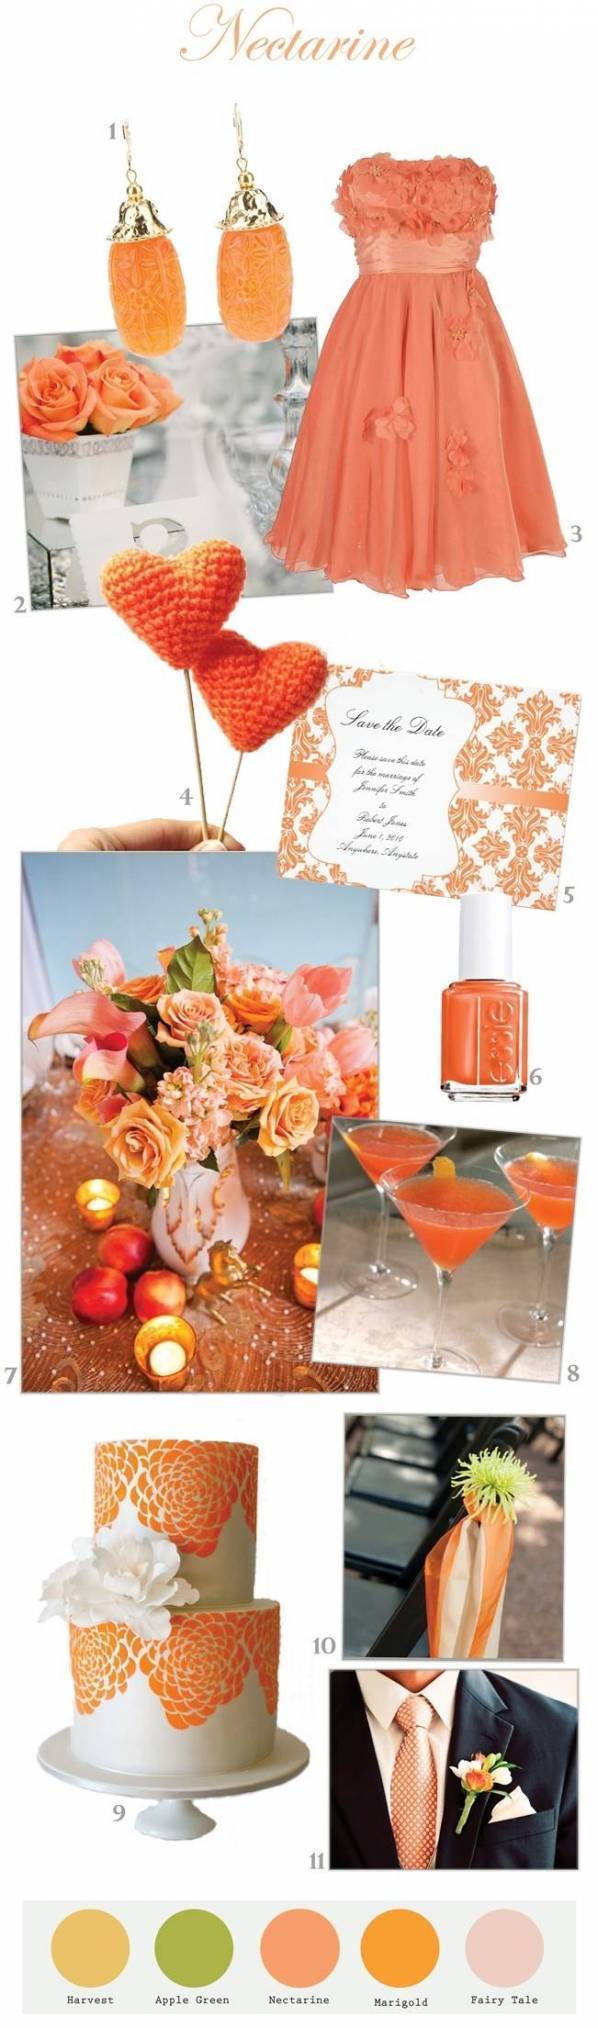 Nectarine Wedding Inspiration